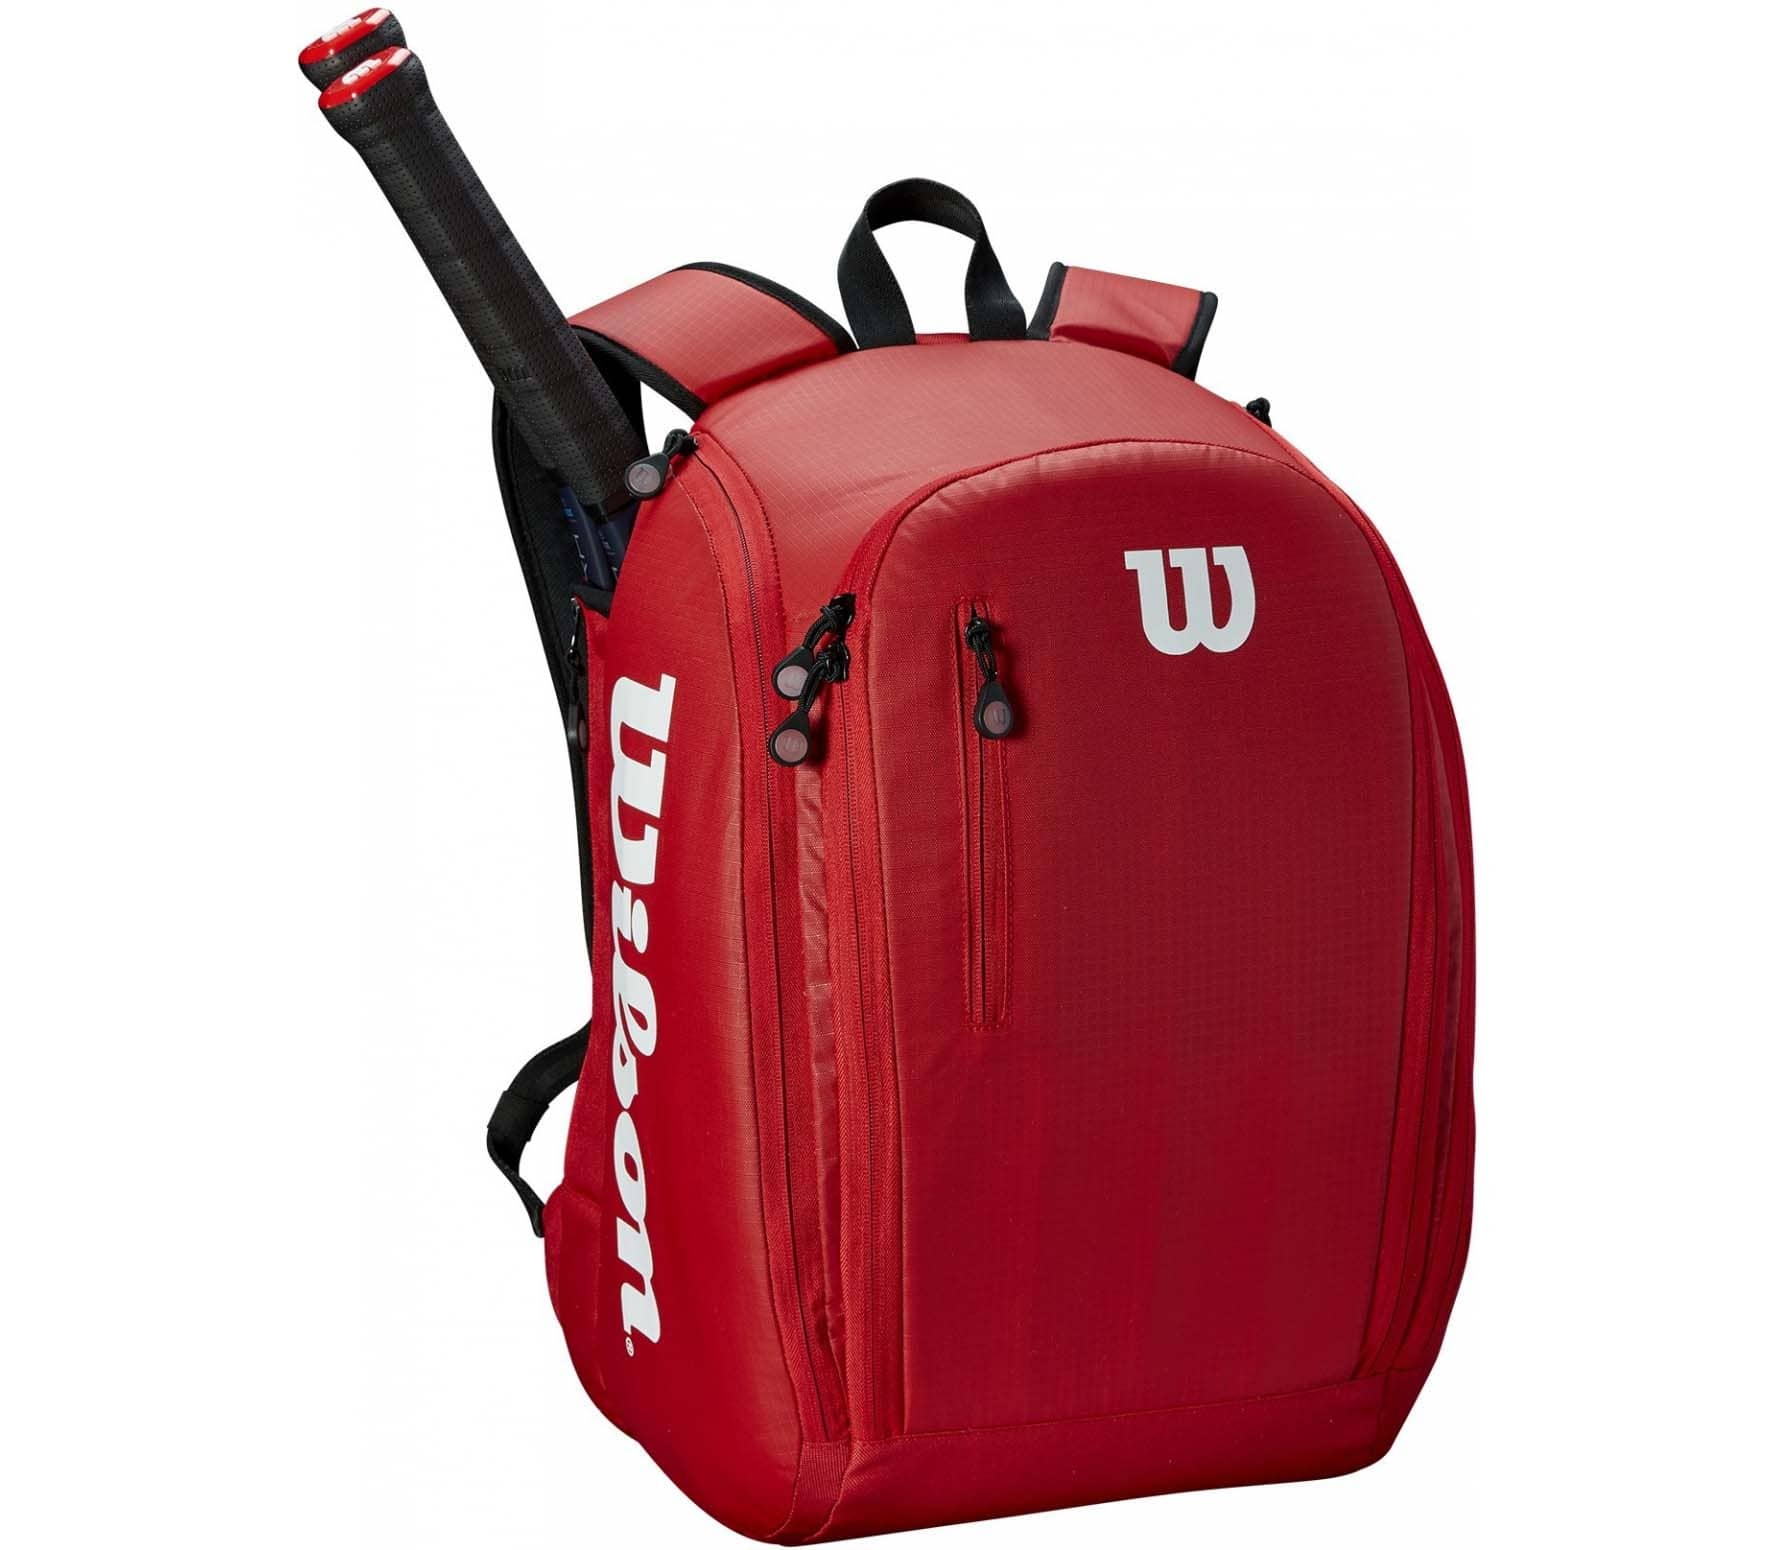 4f728f2993 Wilson - Tour backpack tennis bag (red) - buy it at the Keller ...